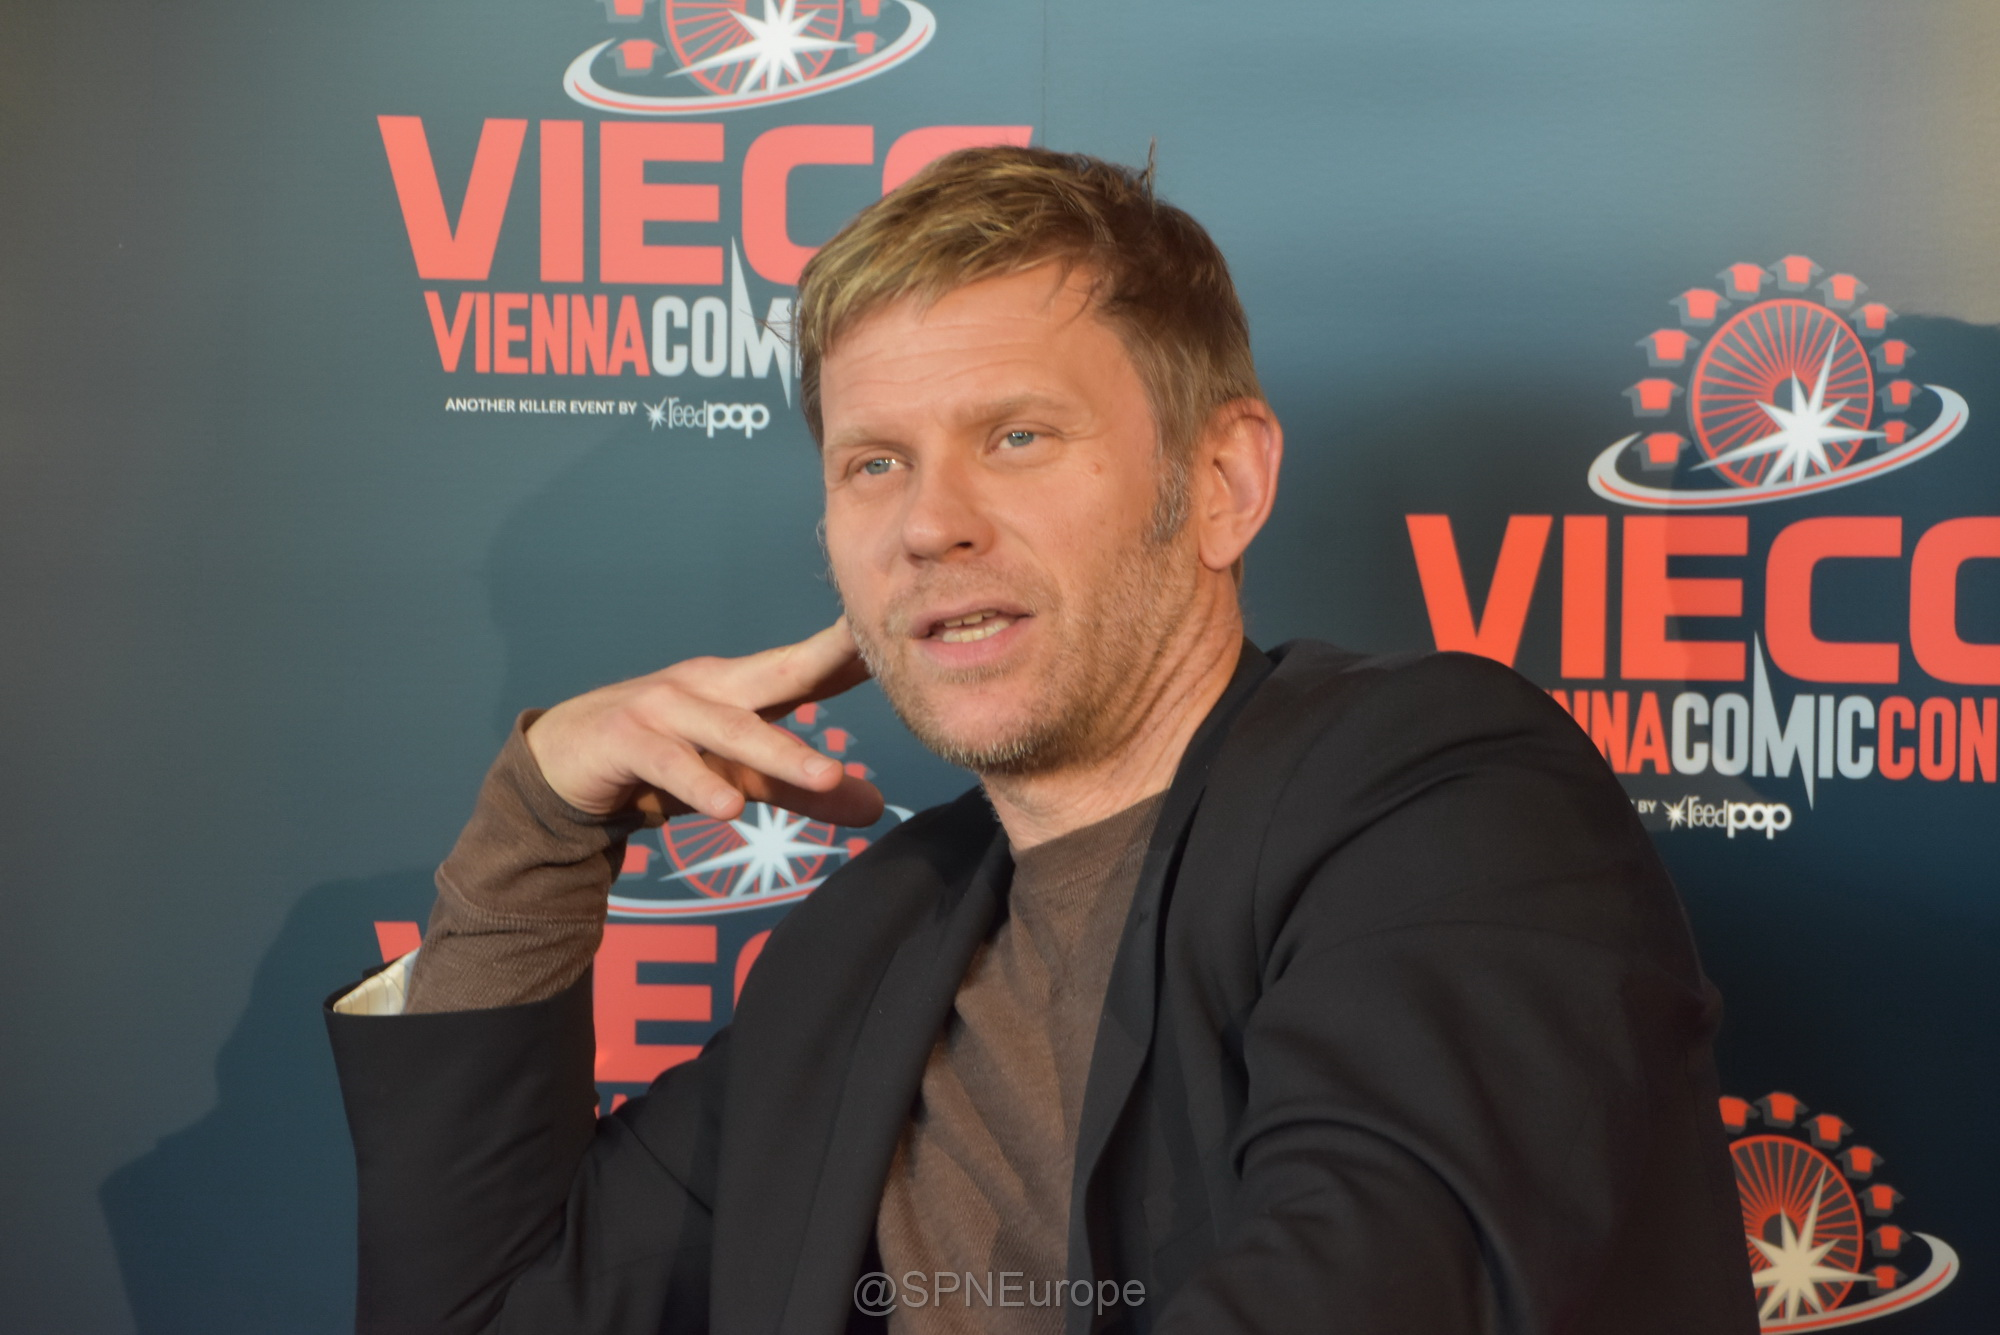 Mark Pellegrino at VIECC 11/20/2016